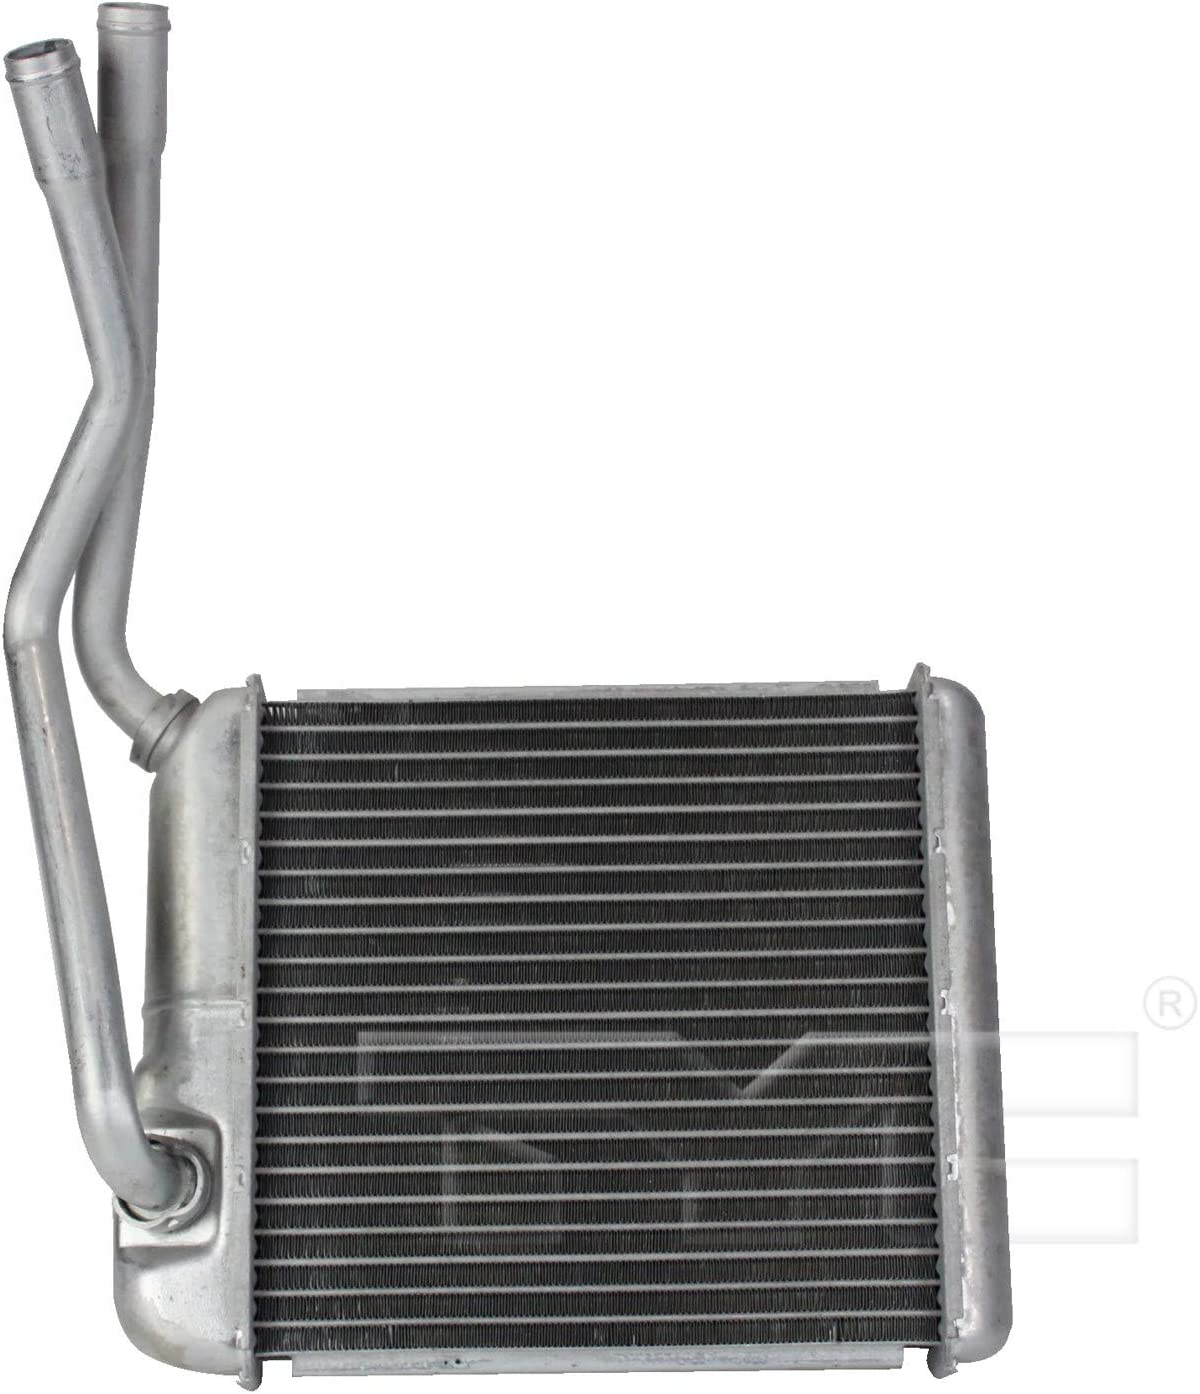 JP Auto HVAC Heater Core Oldsmobile Compatible Chevrolet Popular brand Max 74% OFF in the world Po With